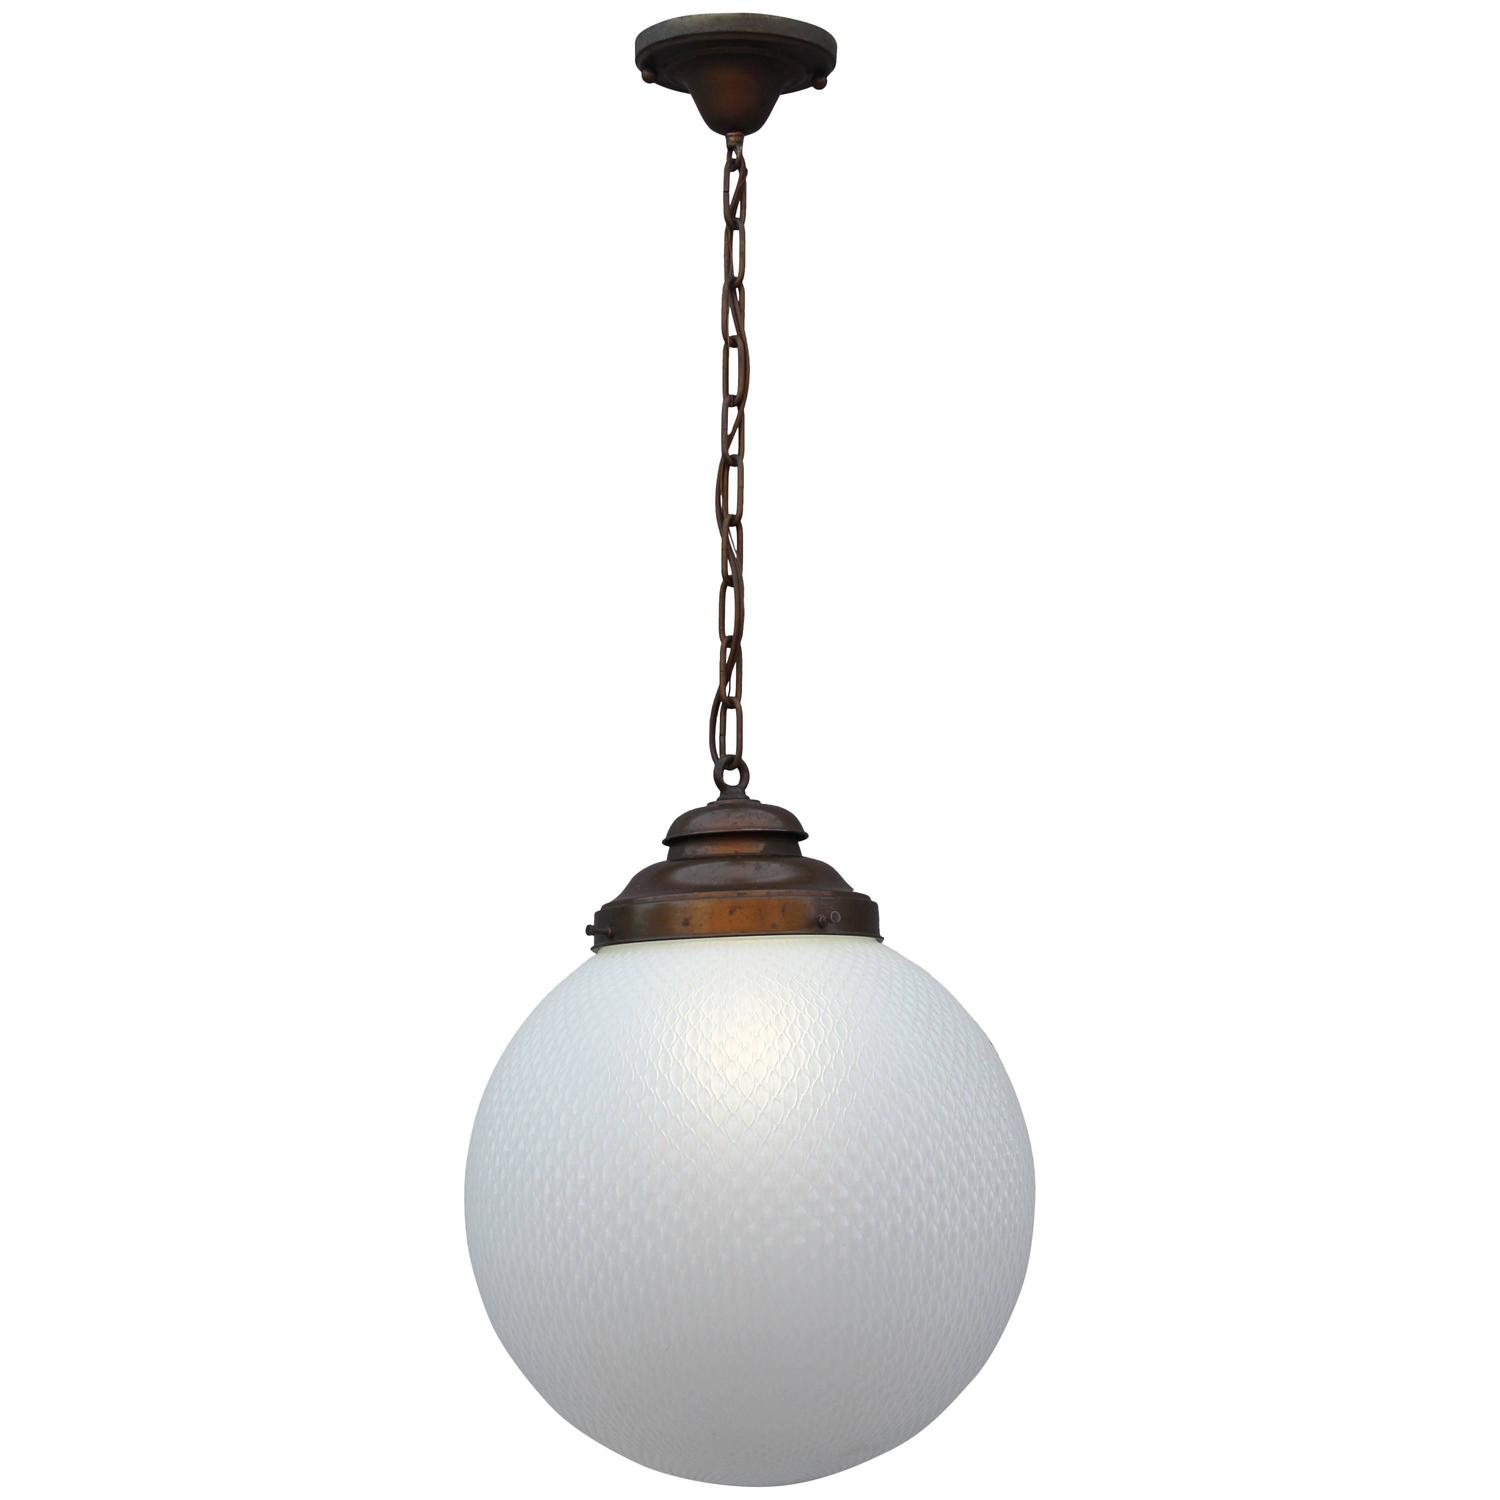 1 Of 2 Outstanding Industrial Large Scale Glass Pendant